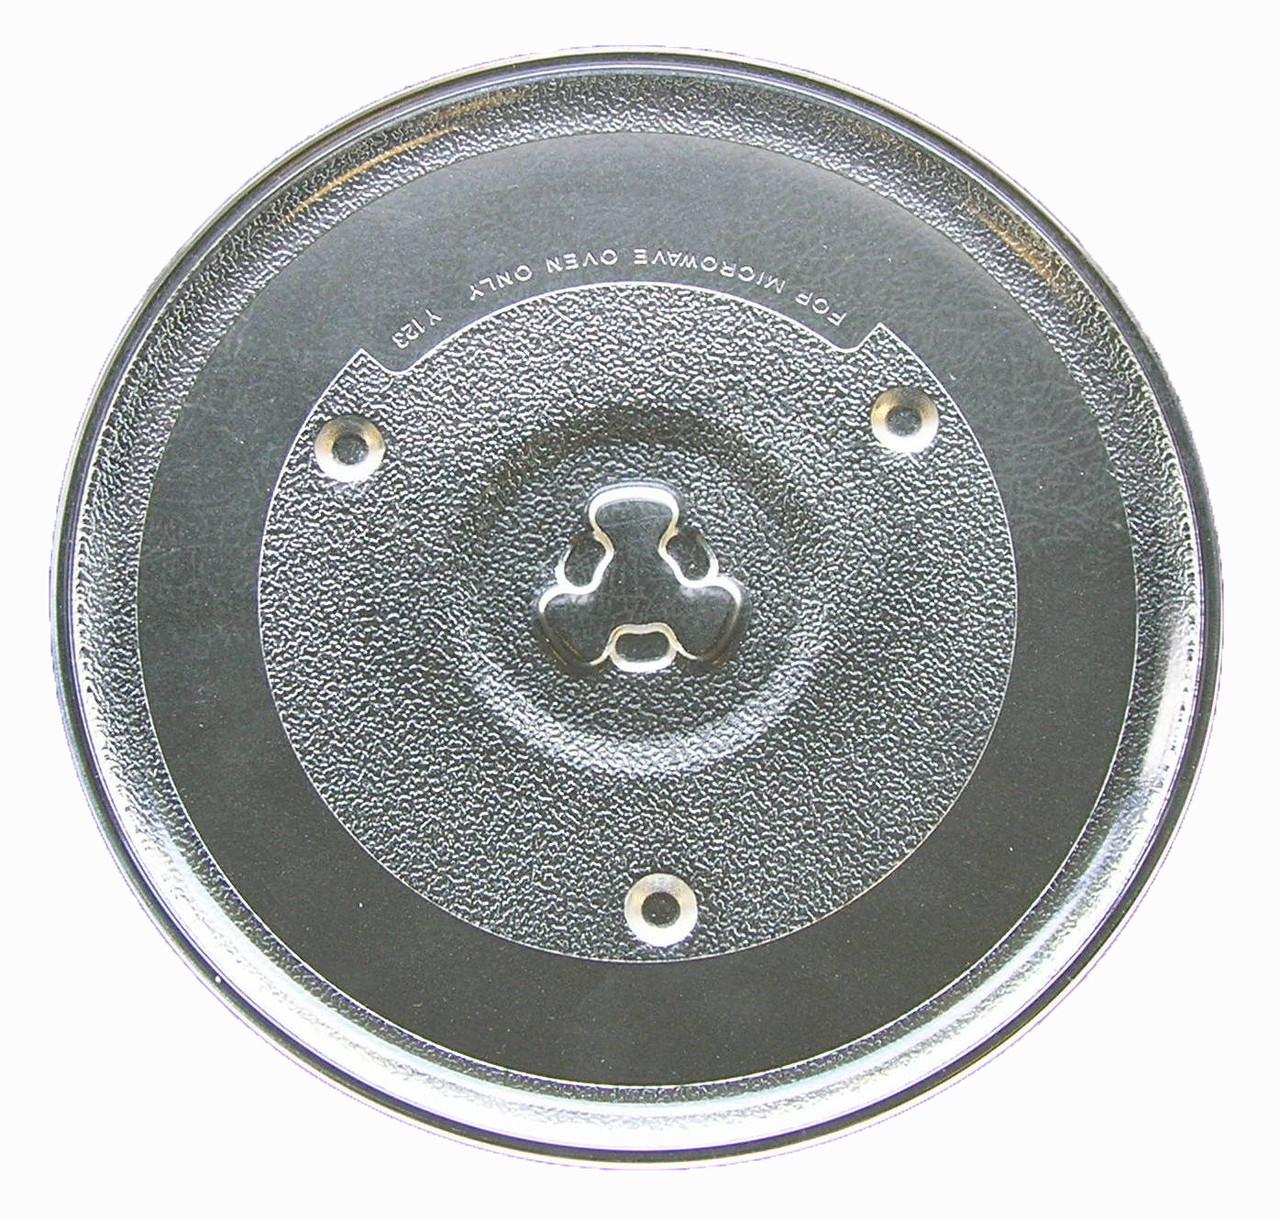 ge microwave glass turntable plate tray 10 1 2 wb49x10185